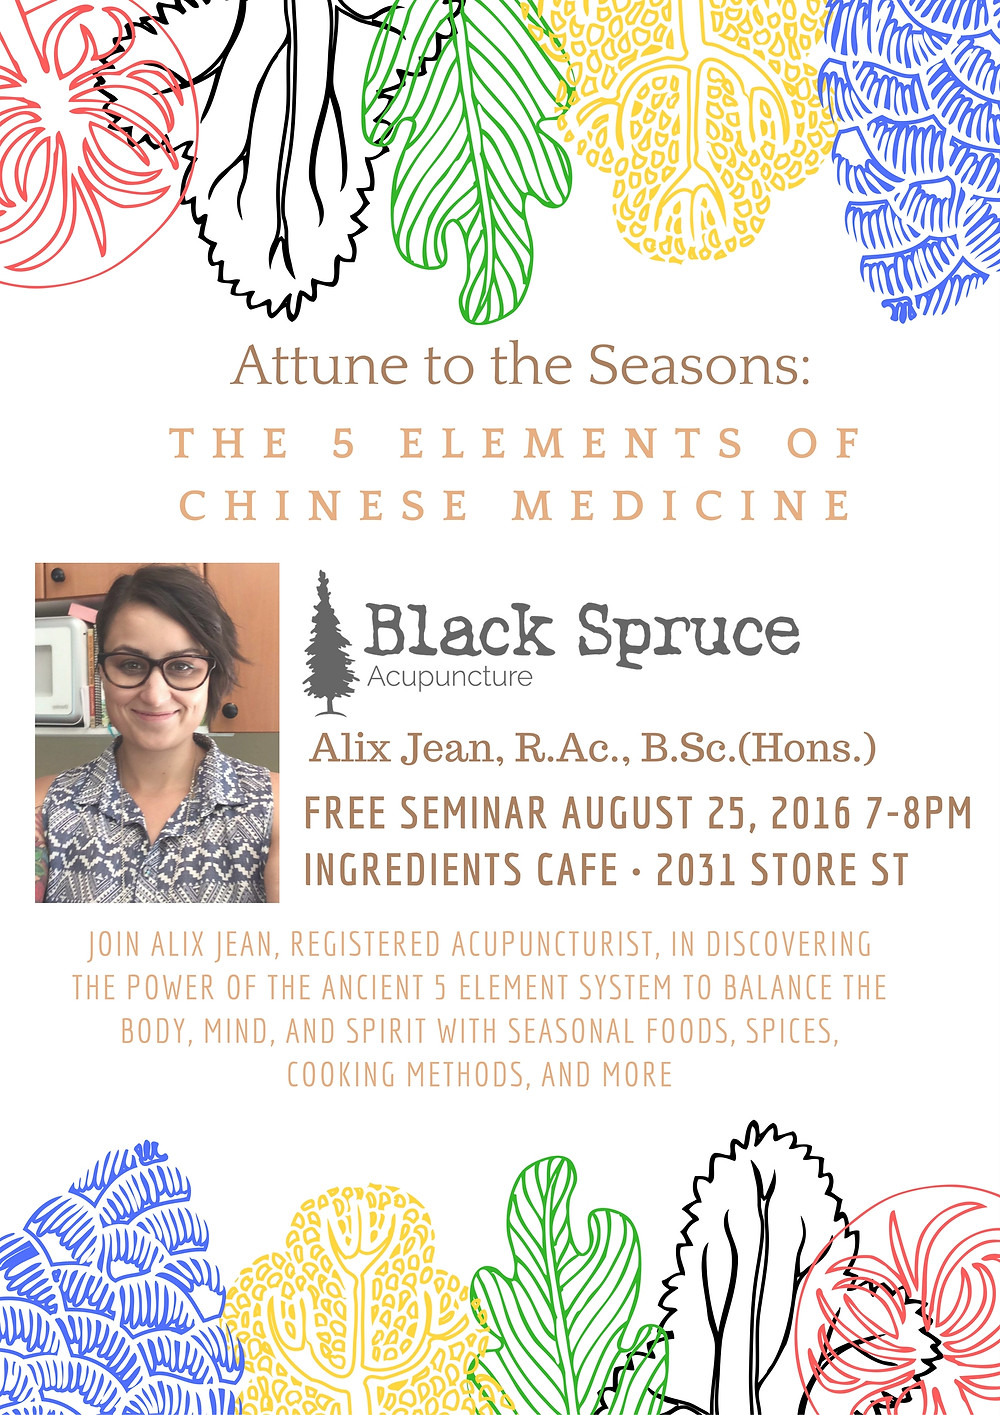 Attune to the Seasons Poster